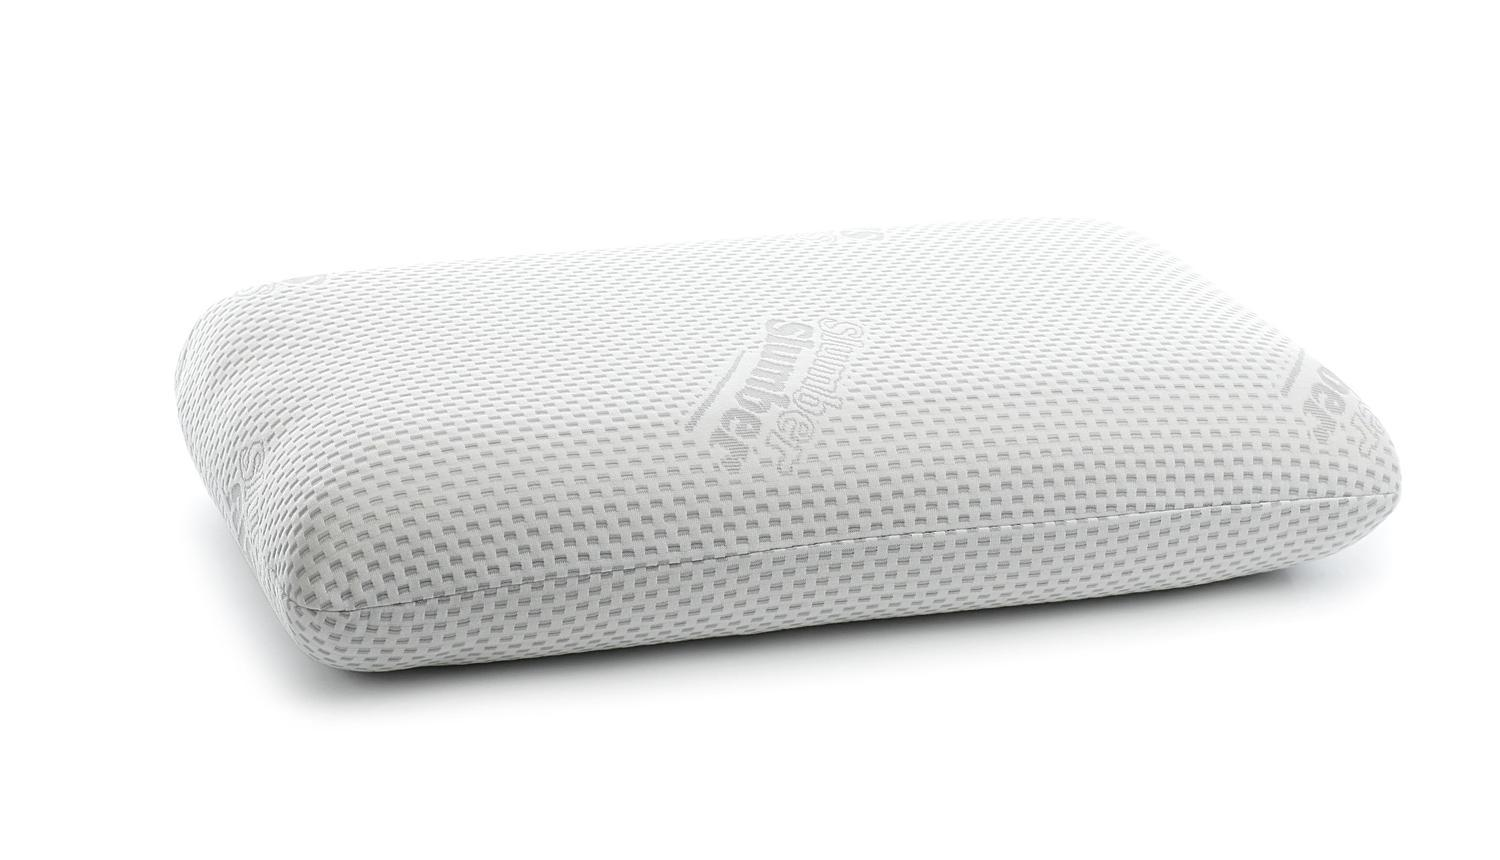 Buy Comfort Memory Foam Pillow with Silver from